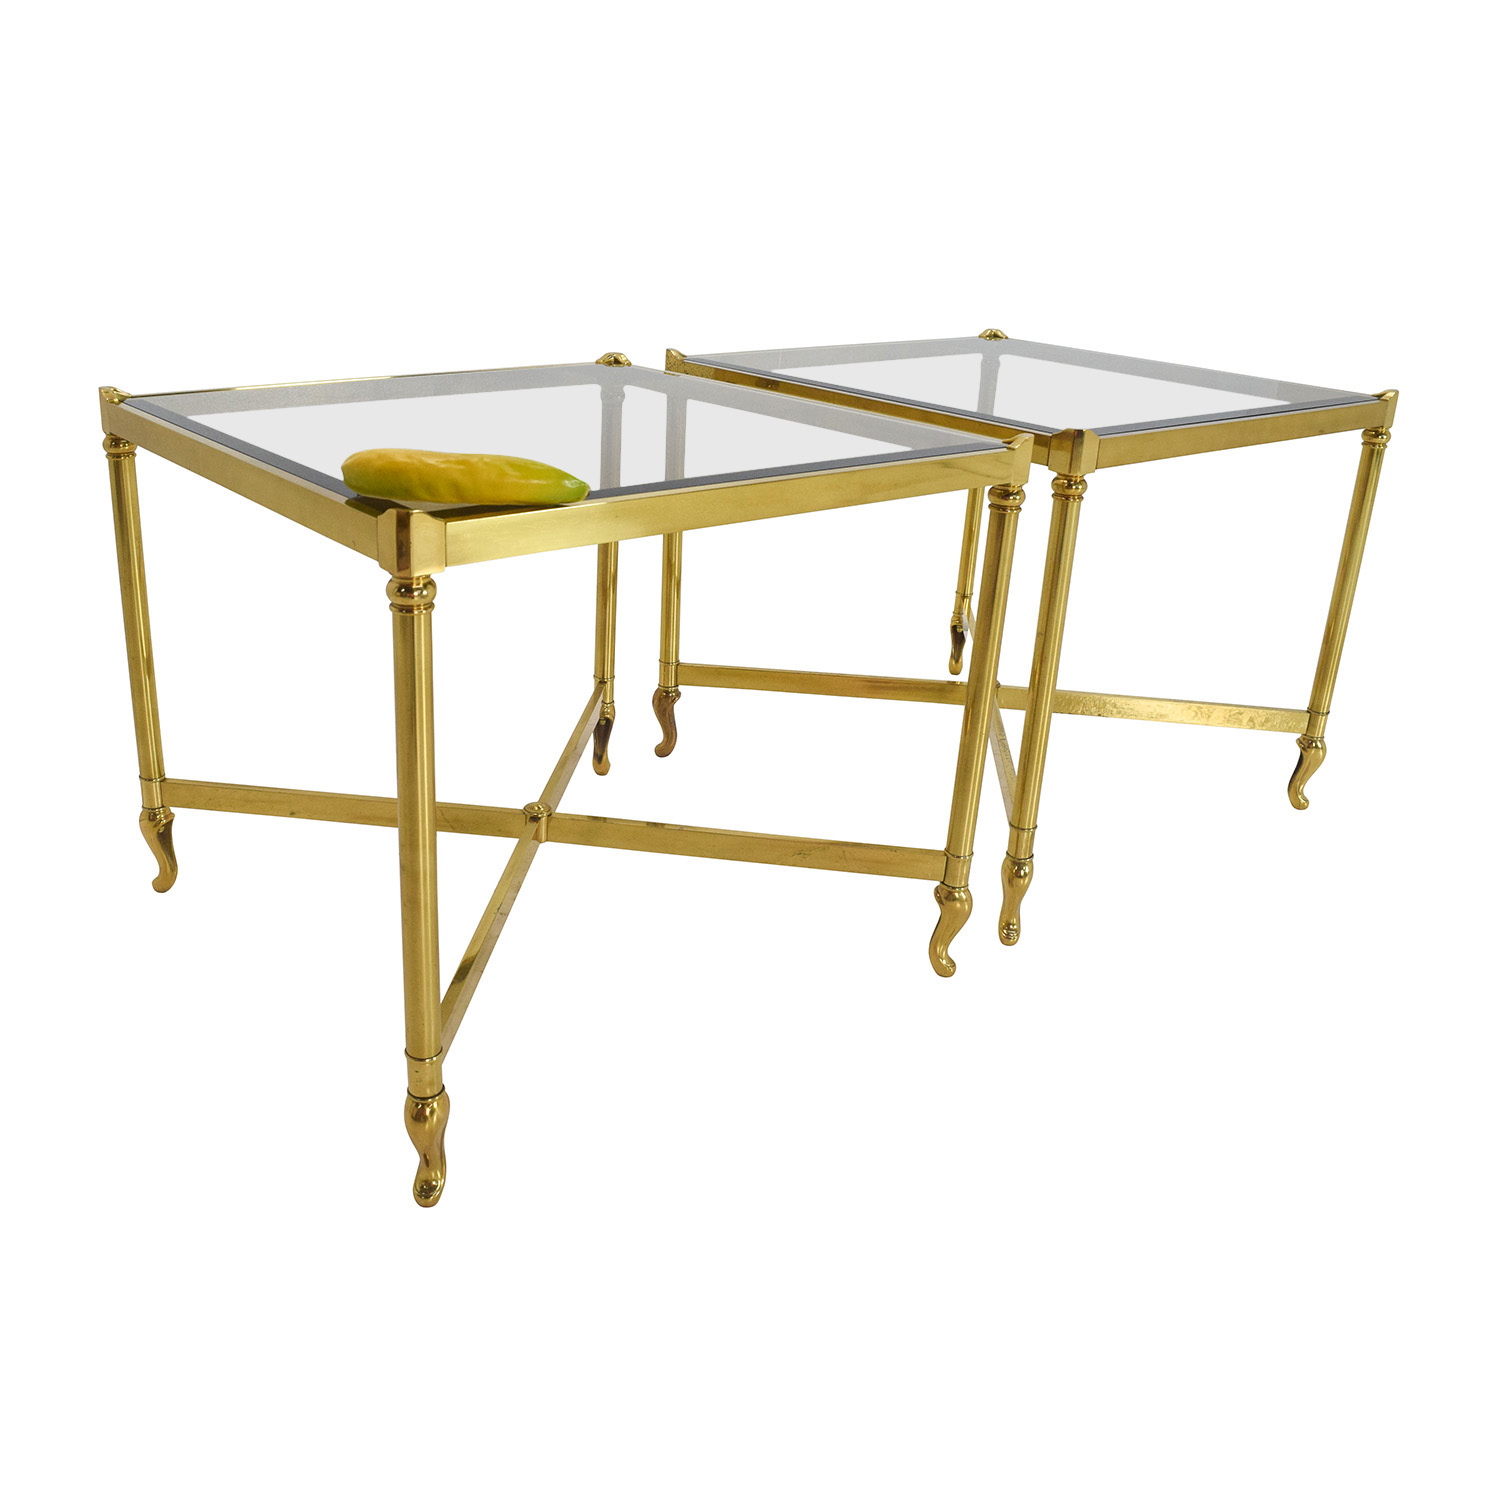 OFF Antique Antique Brass Side Tables Tables - Brushed brass side table